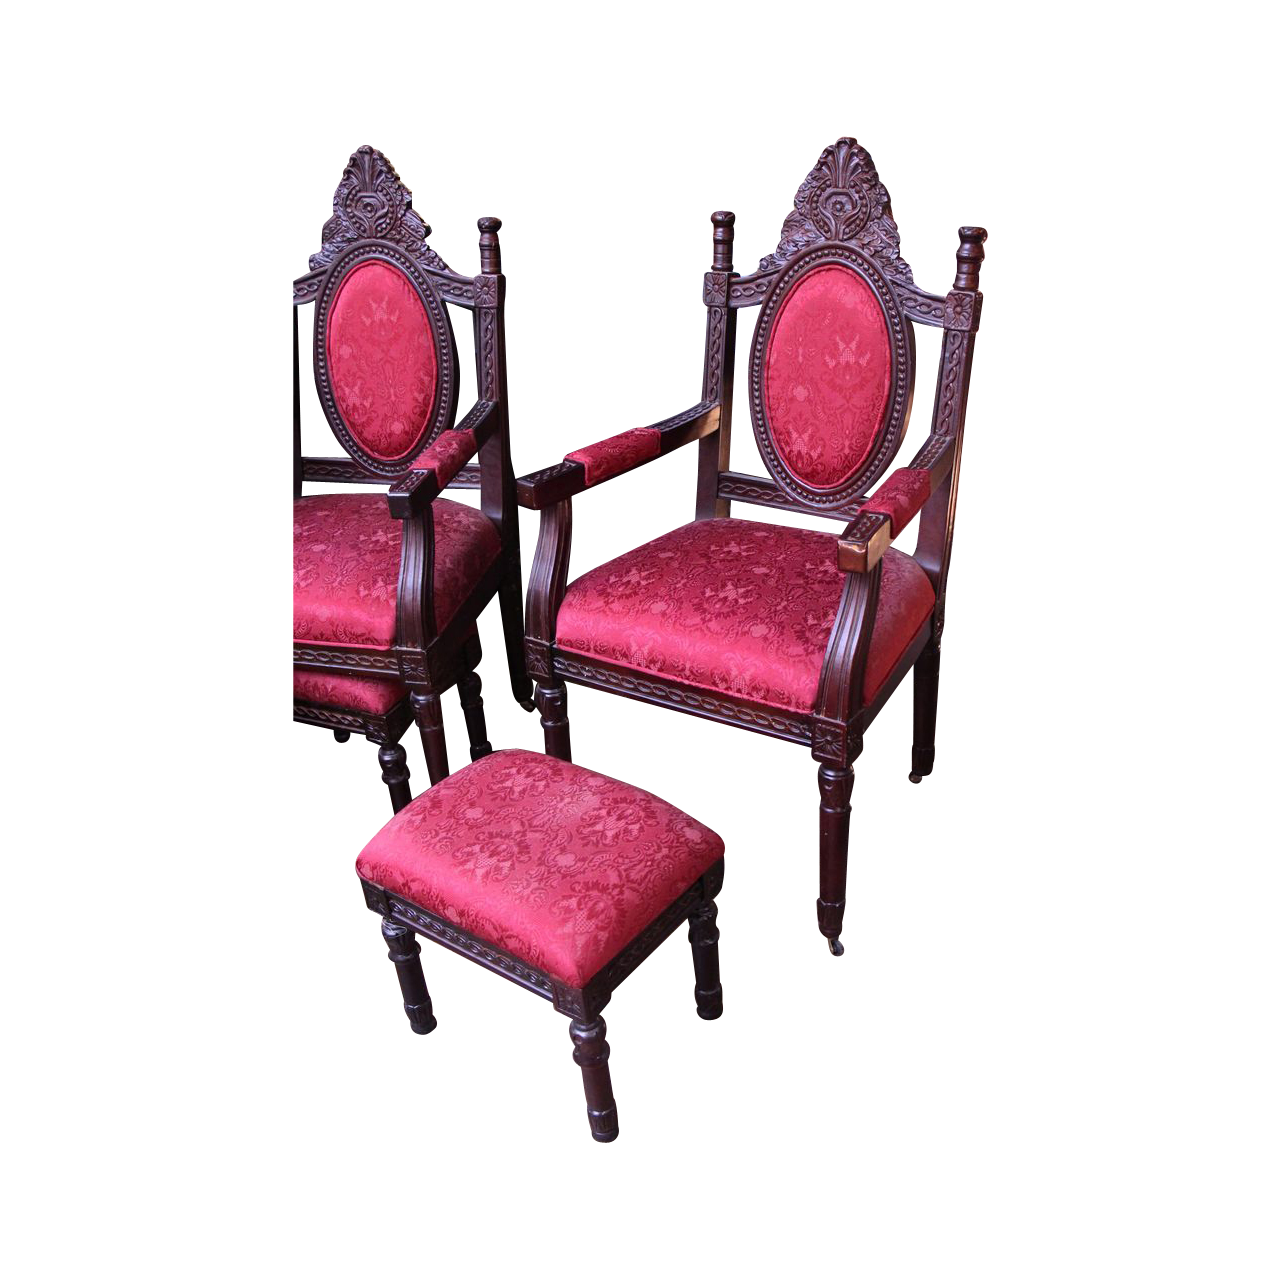 Pair of ornate red cushioned chairs with matching foot stool